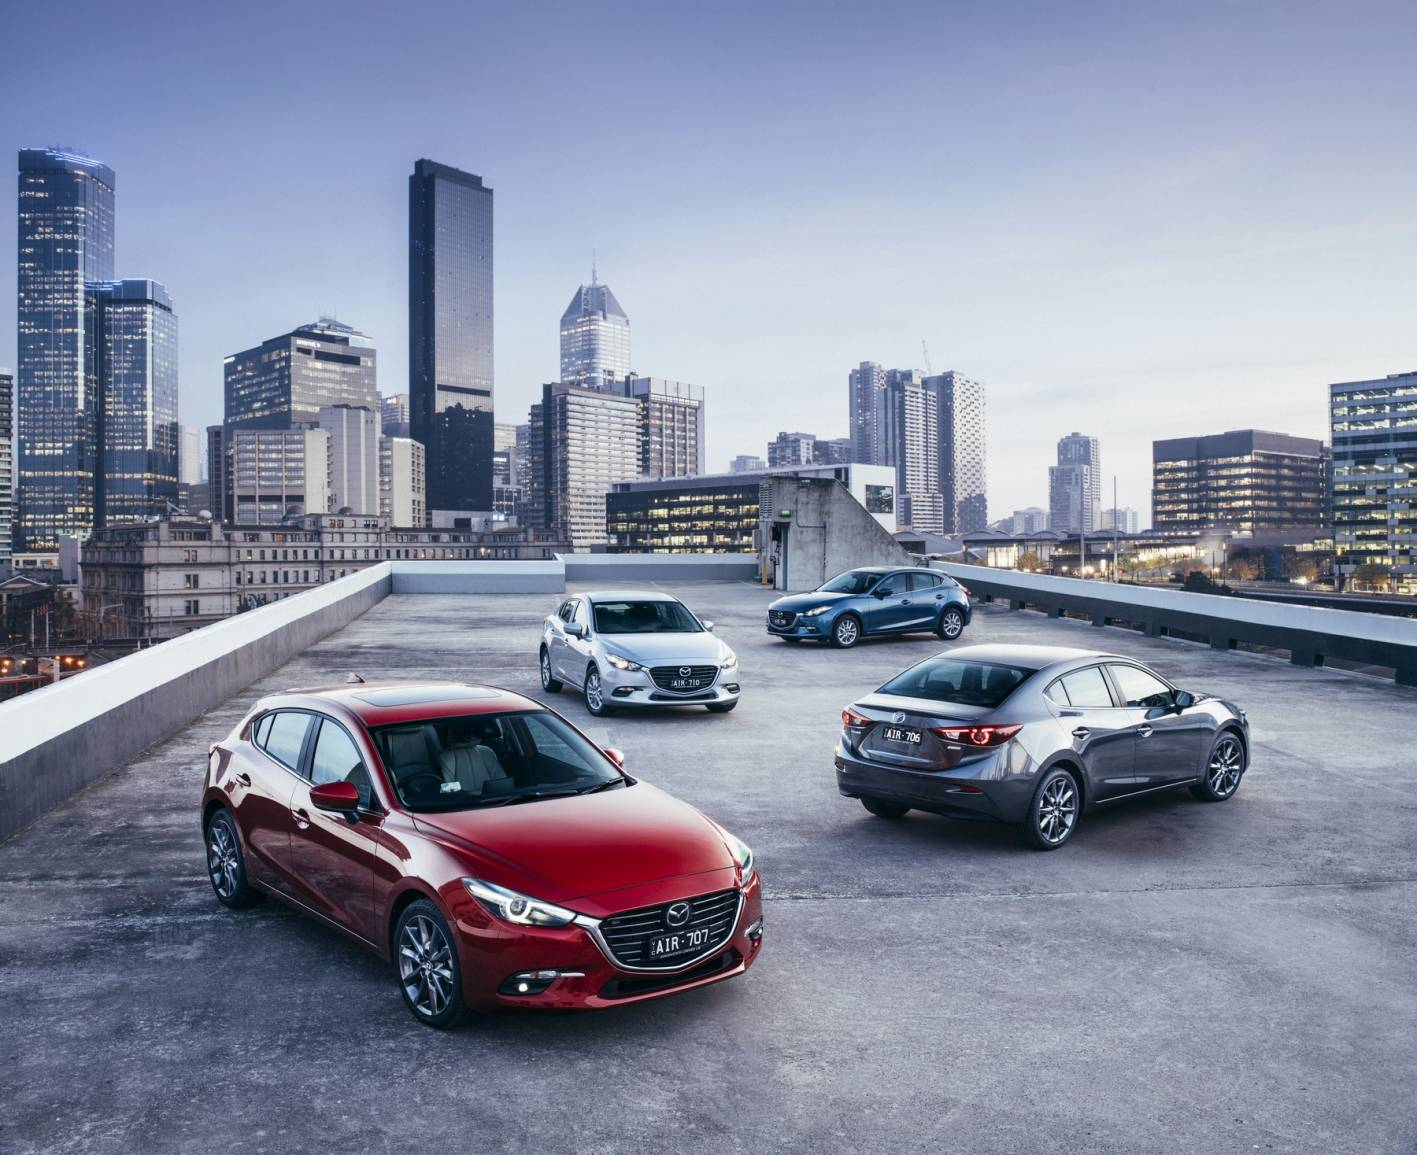 VFACTS January - 2017 Makes A Flying Start | Mazda3 Tops The Charts